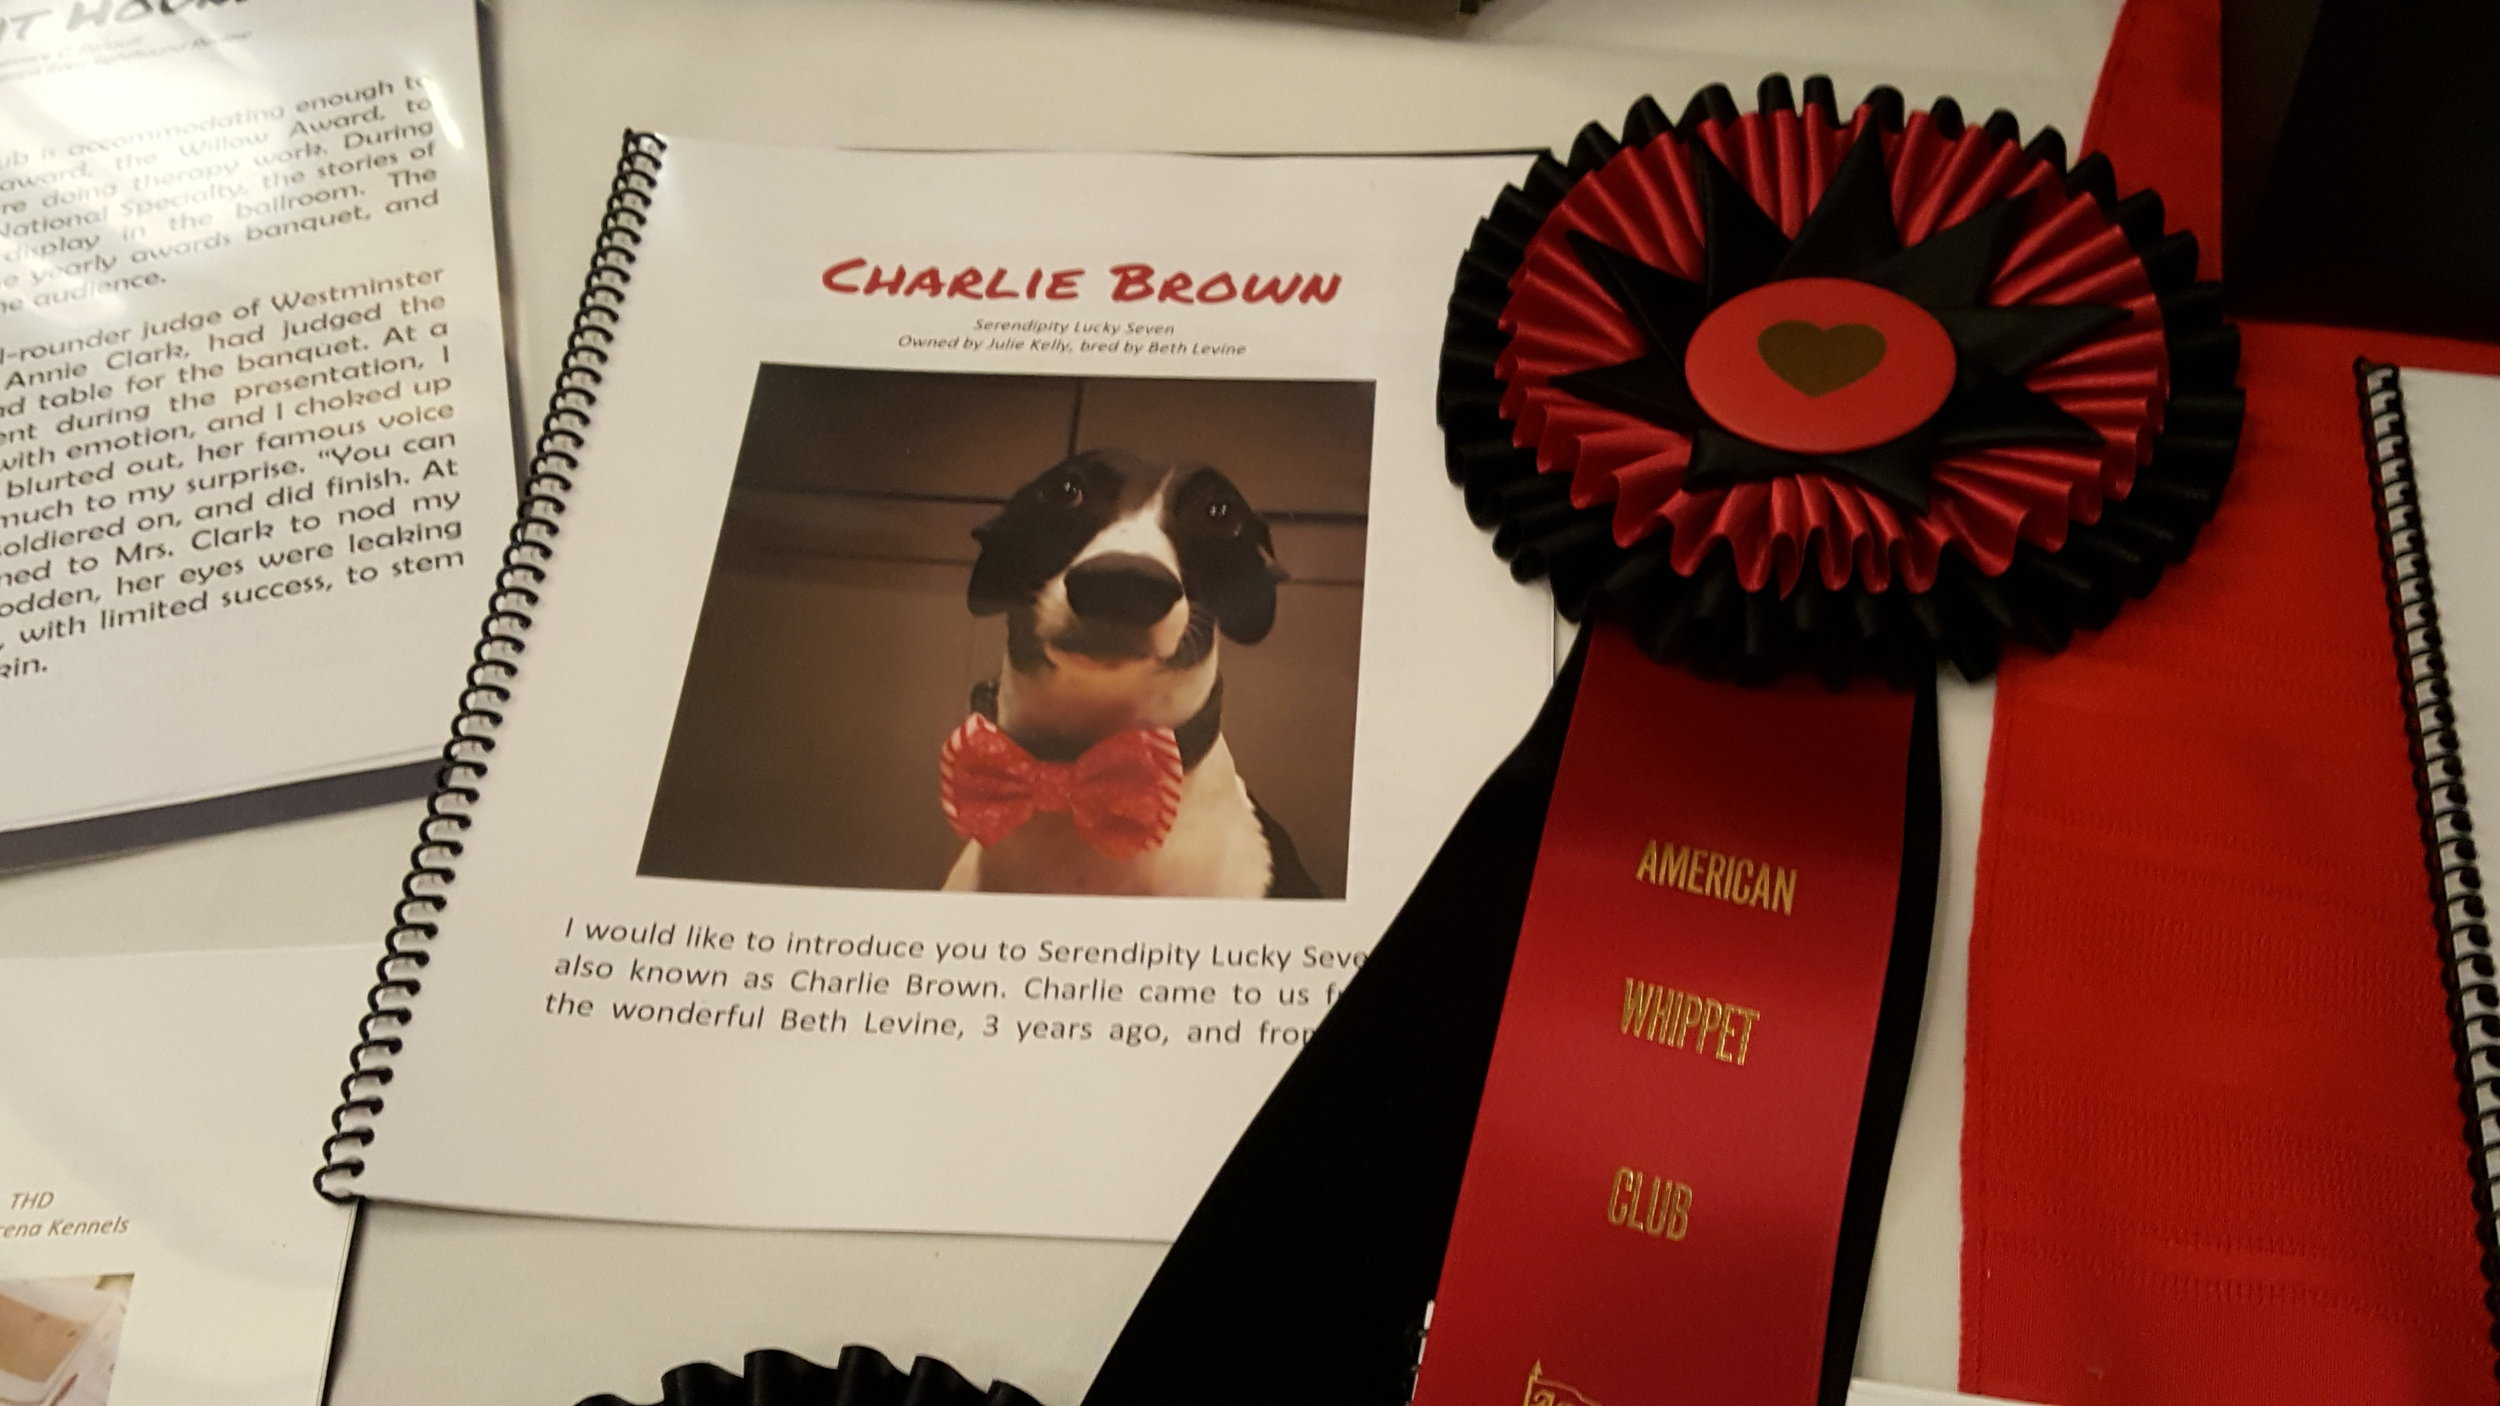 Charlie's Willow Award presentation at the 2018 AWC National Specialty